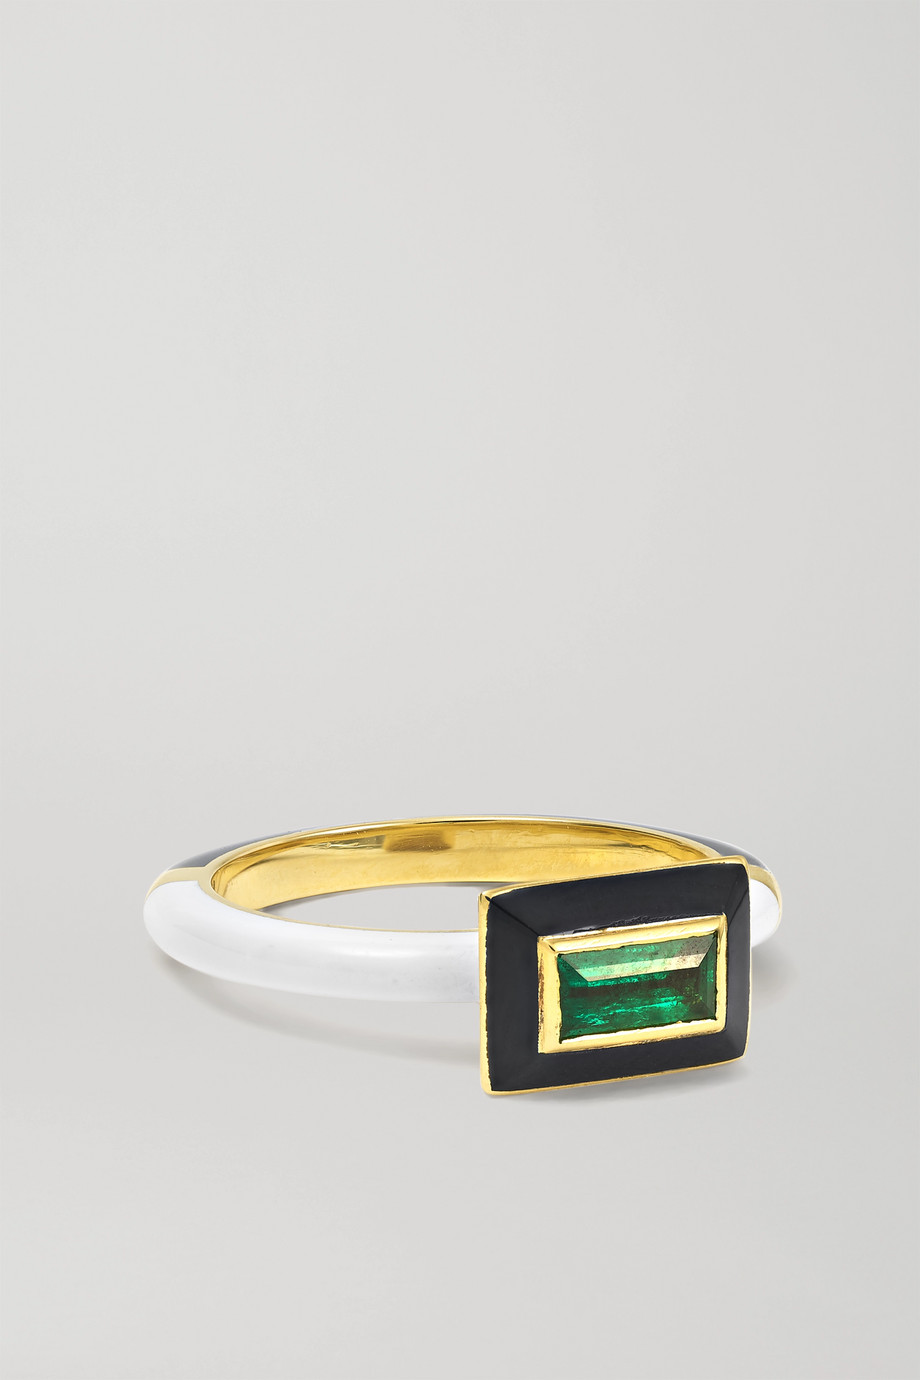 Alice Cicolini Memphis Candy 14-karat gold, enamel and emerald ring